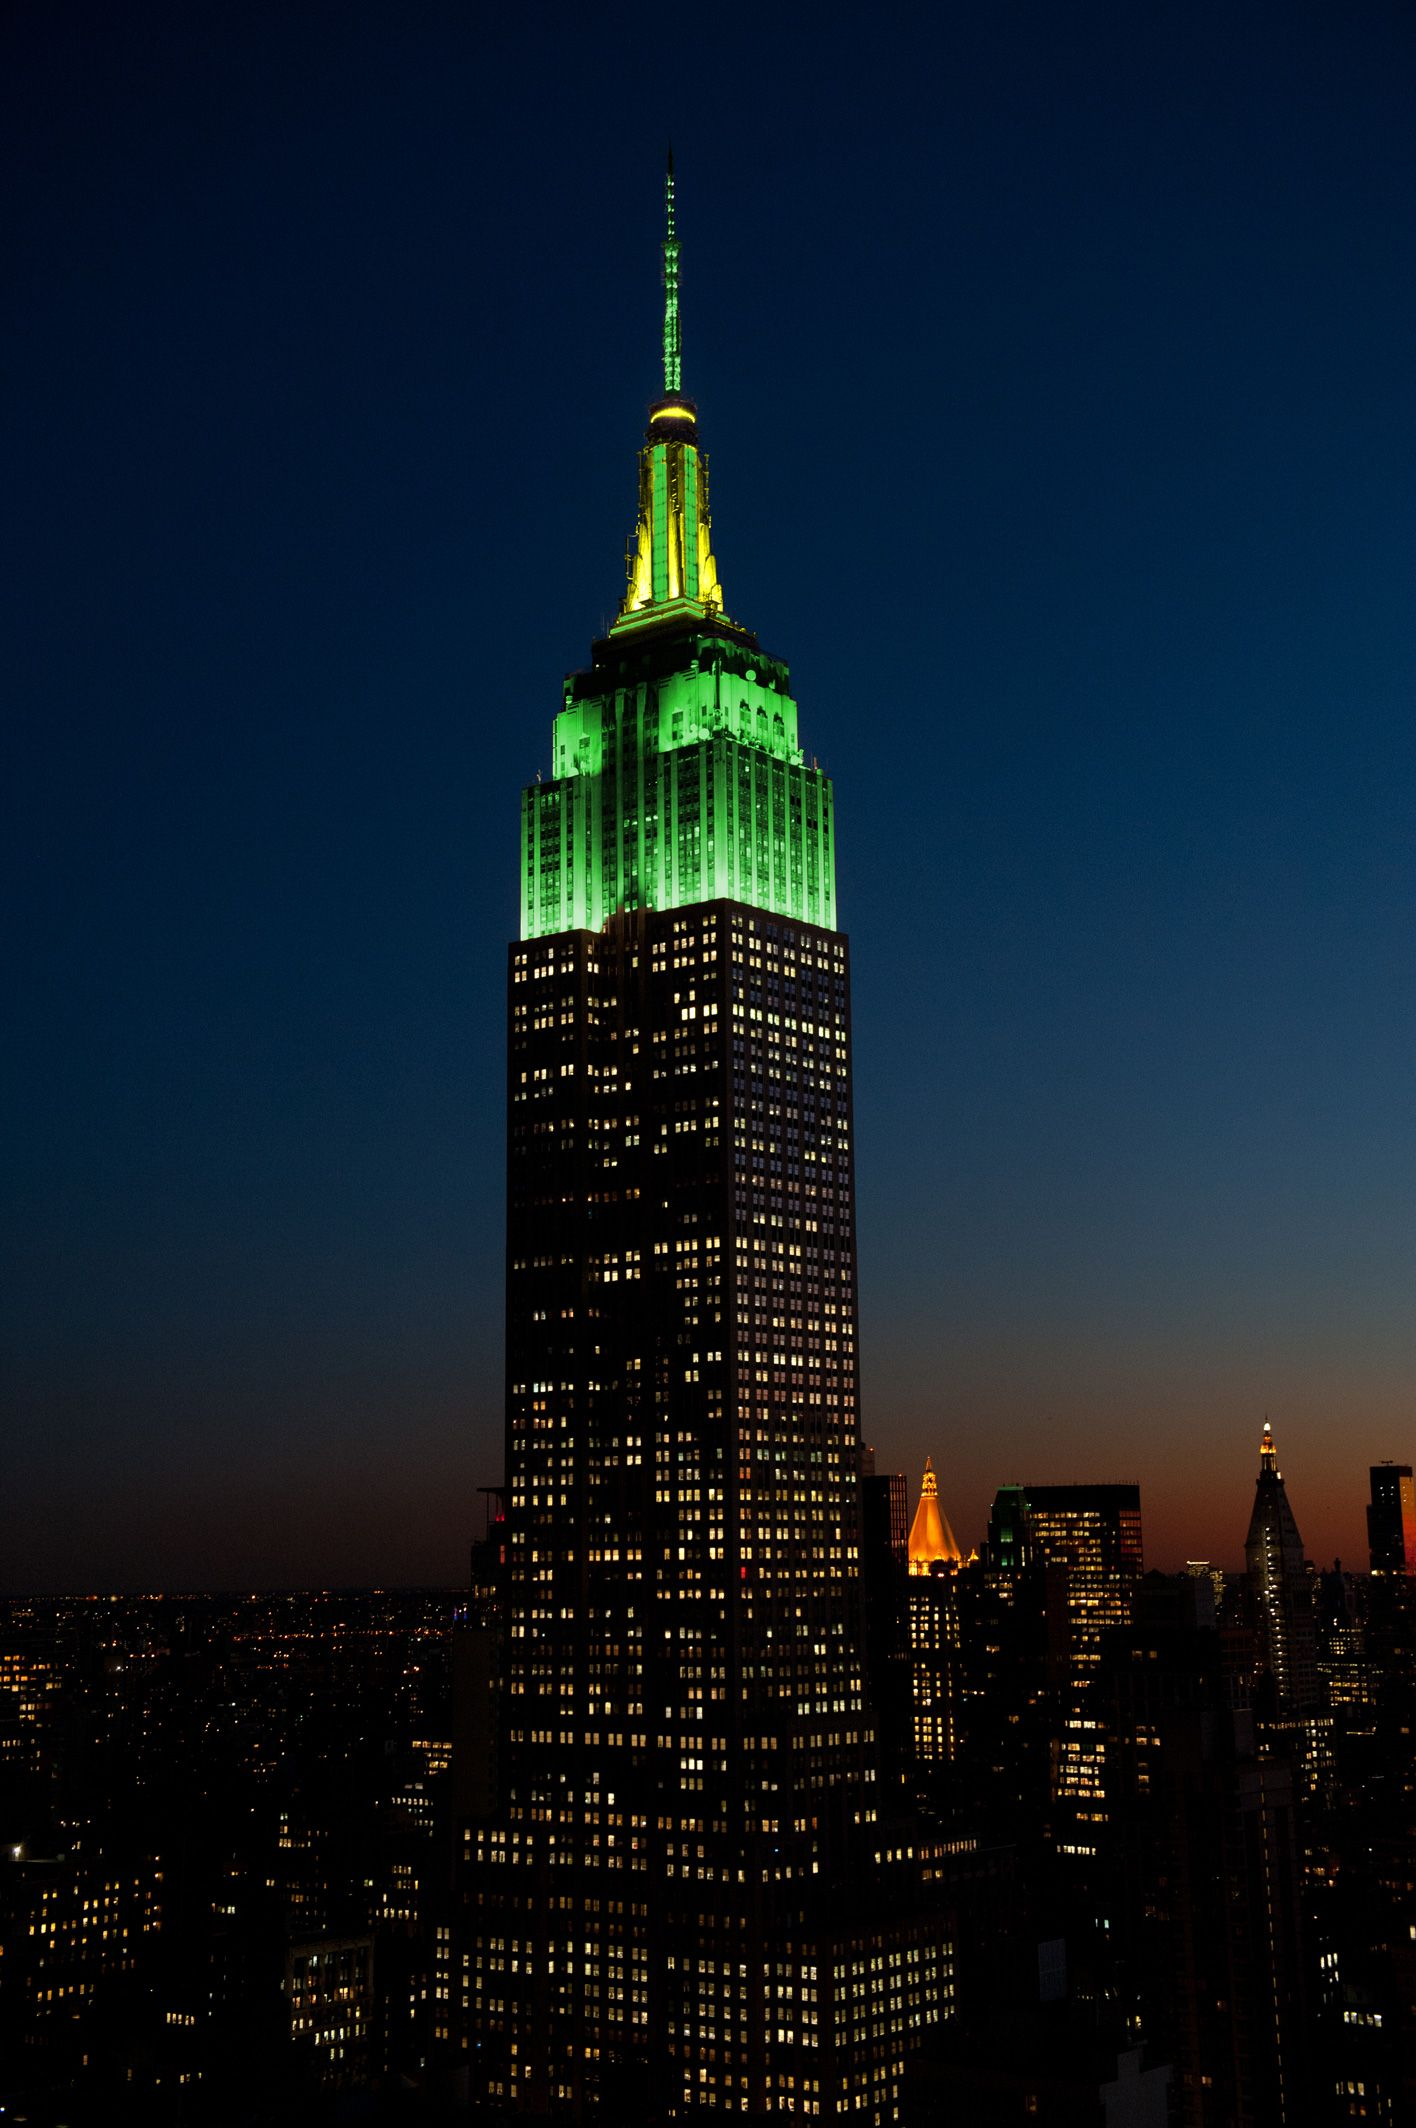 April 13, 2015: To celebrate the 2015 Masters Tournament, the Empire State Building glows in golf course green and yellow